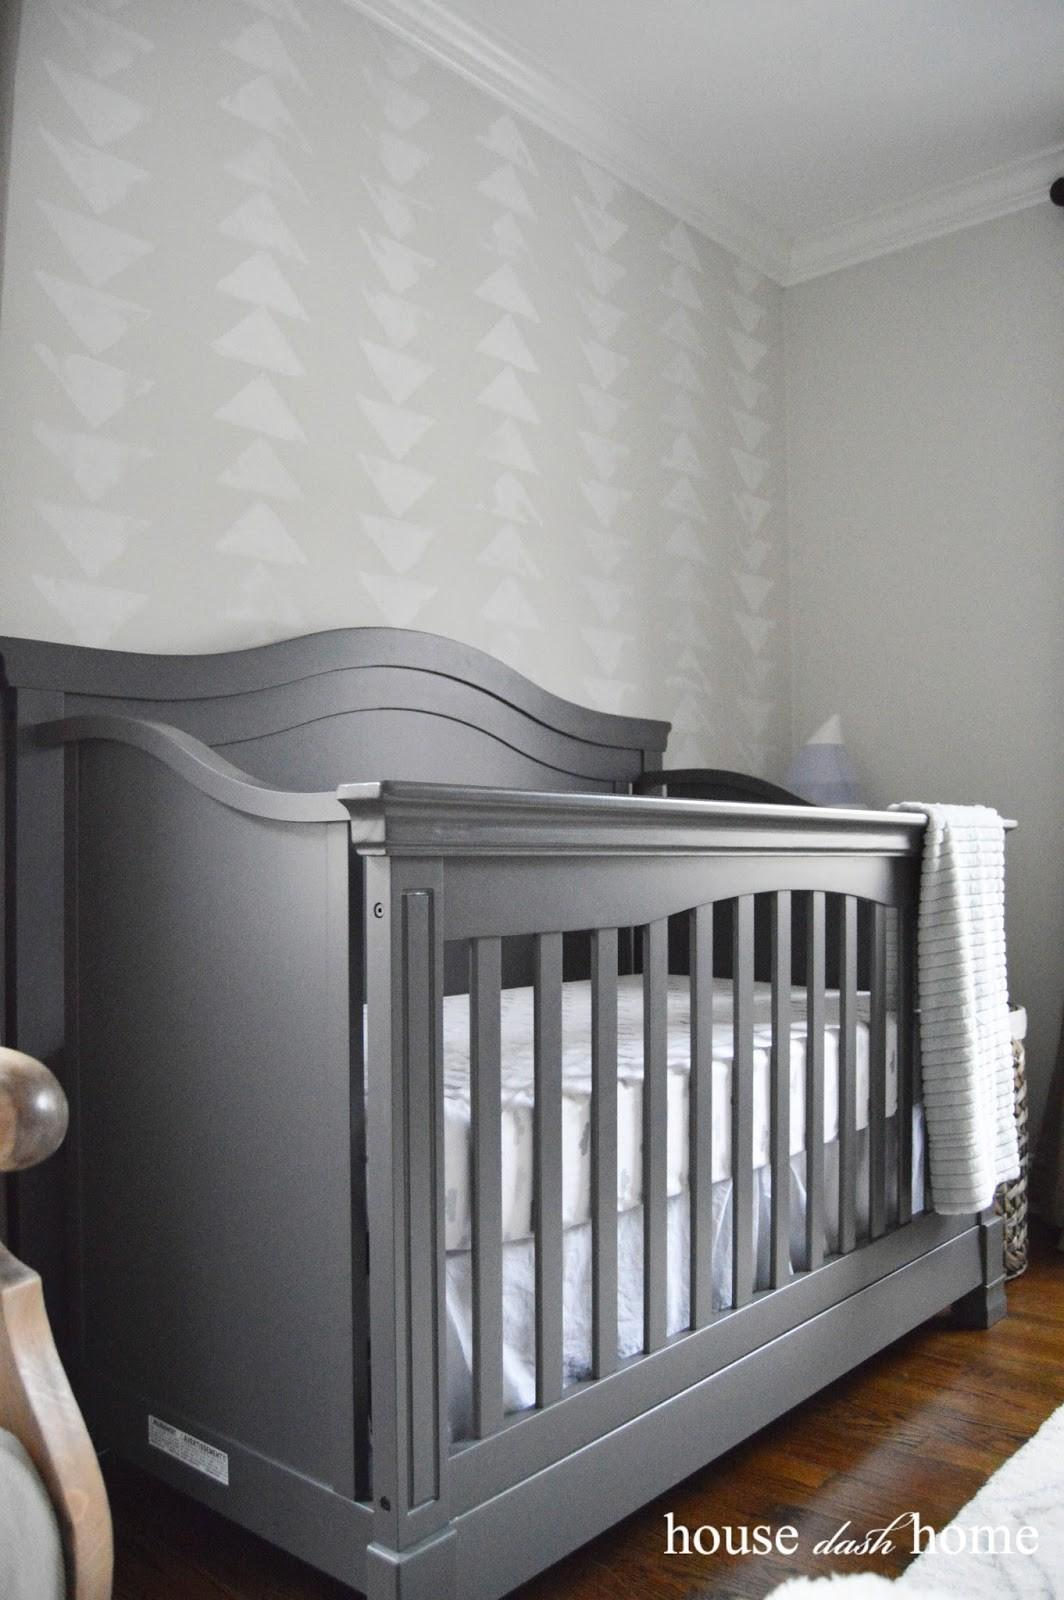 House Dash Home Nursery Mountain Accent Wall